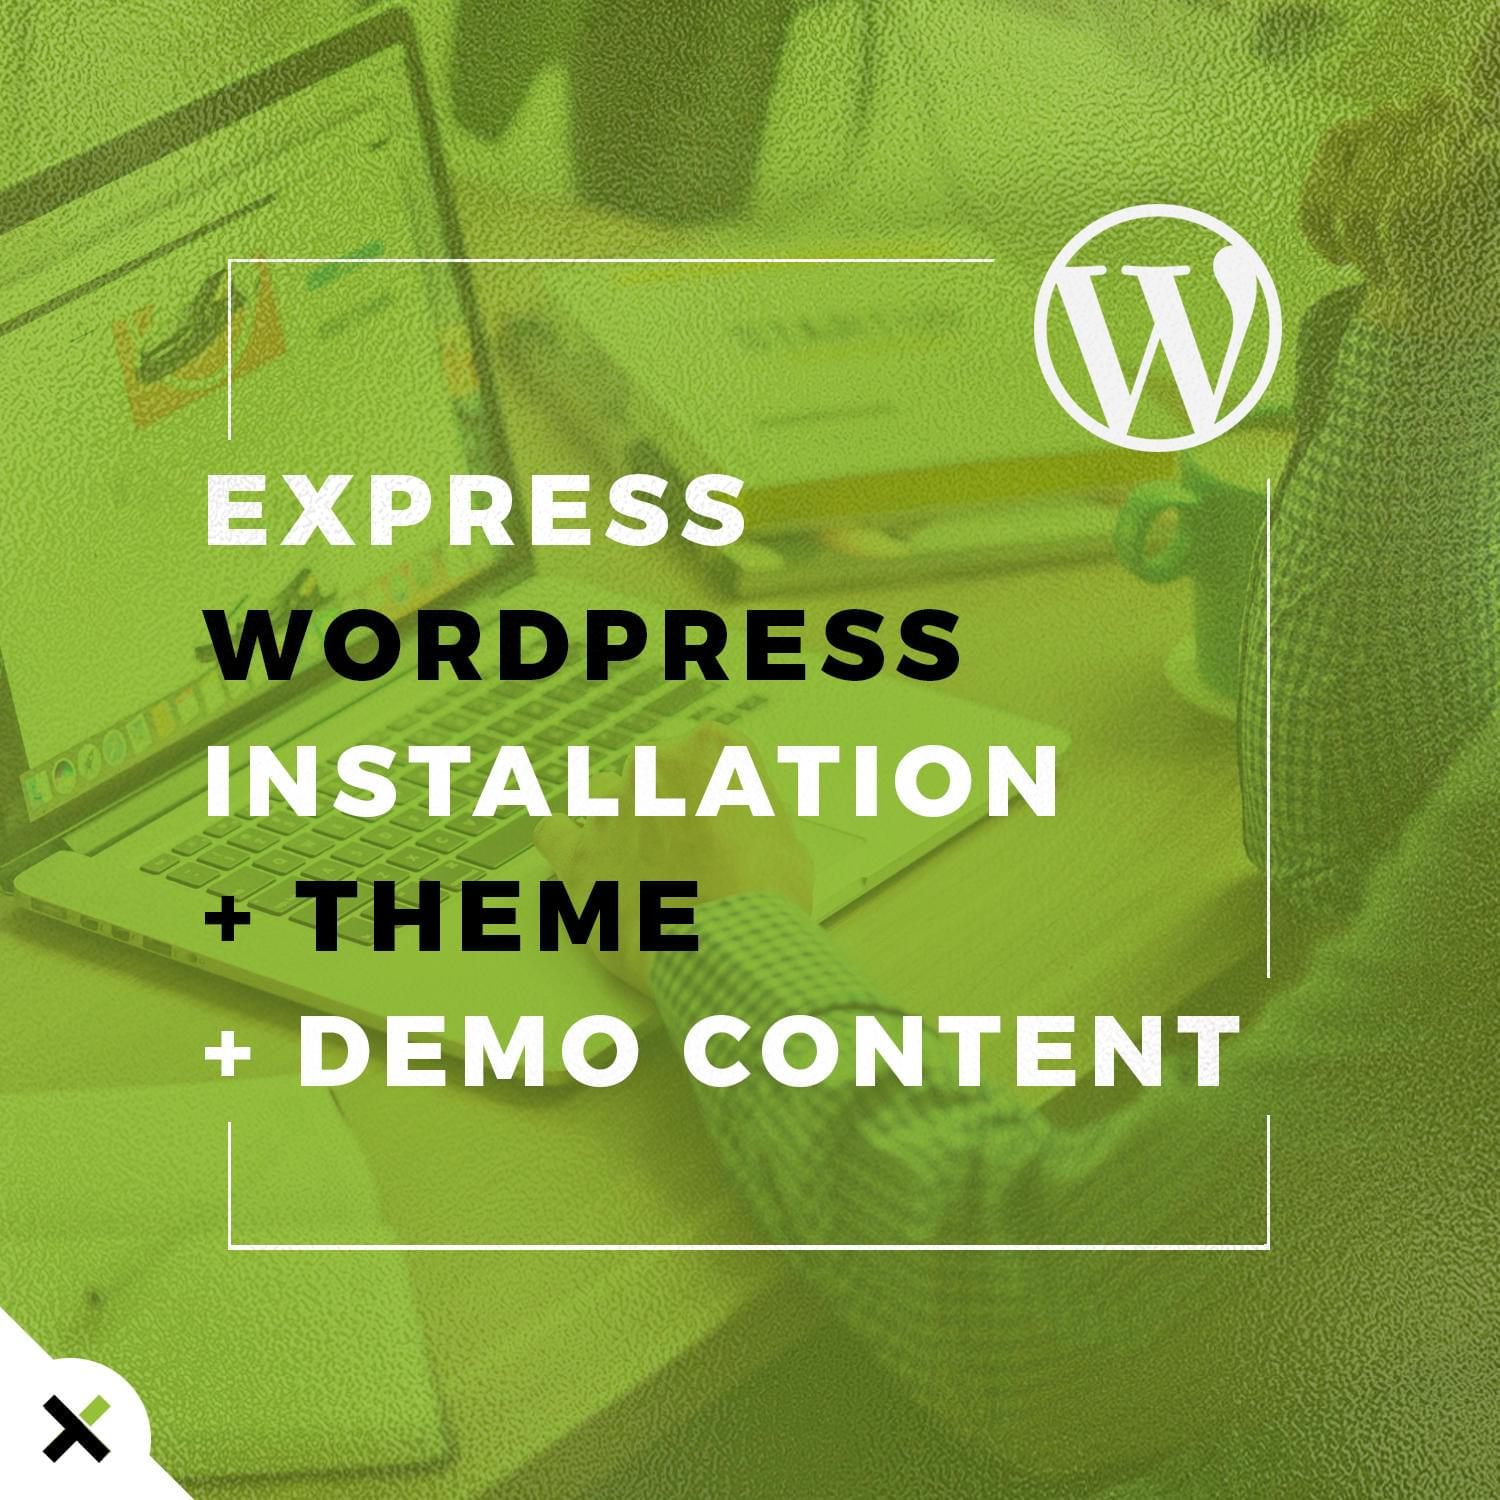 Express WordPress Installation + Theme + Demo Content by touringxx - 113963